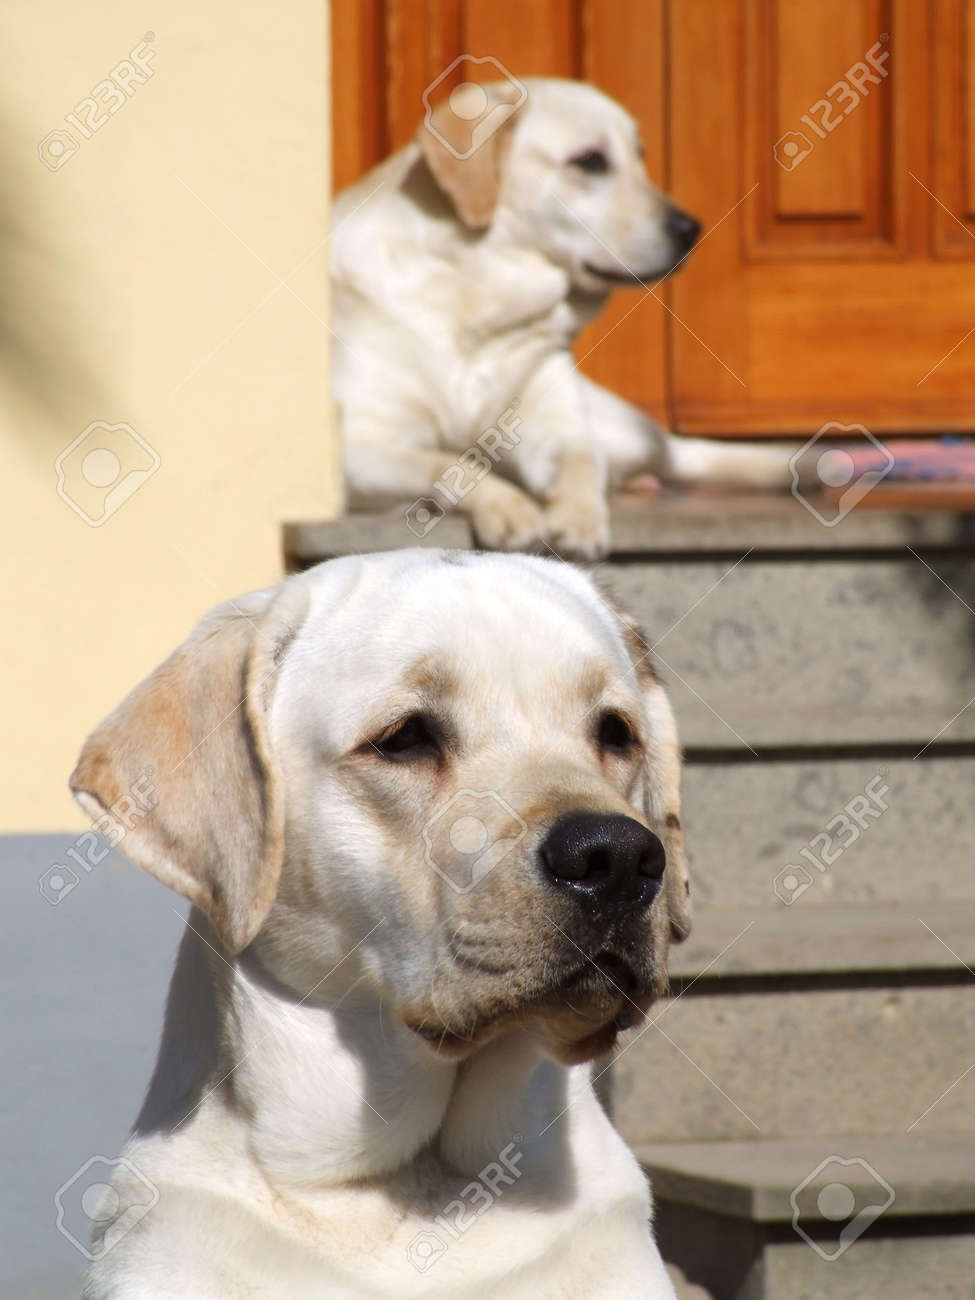 Two white dogs in front of a house's door Stock Photo - 2920708